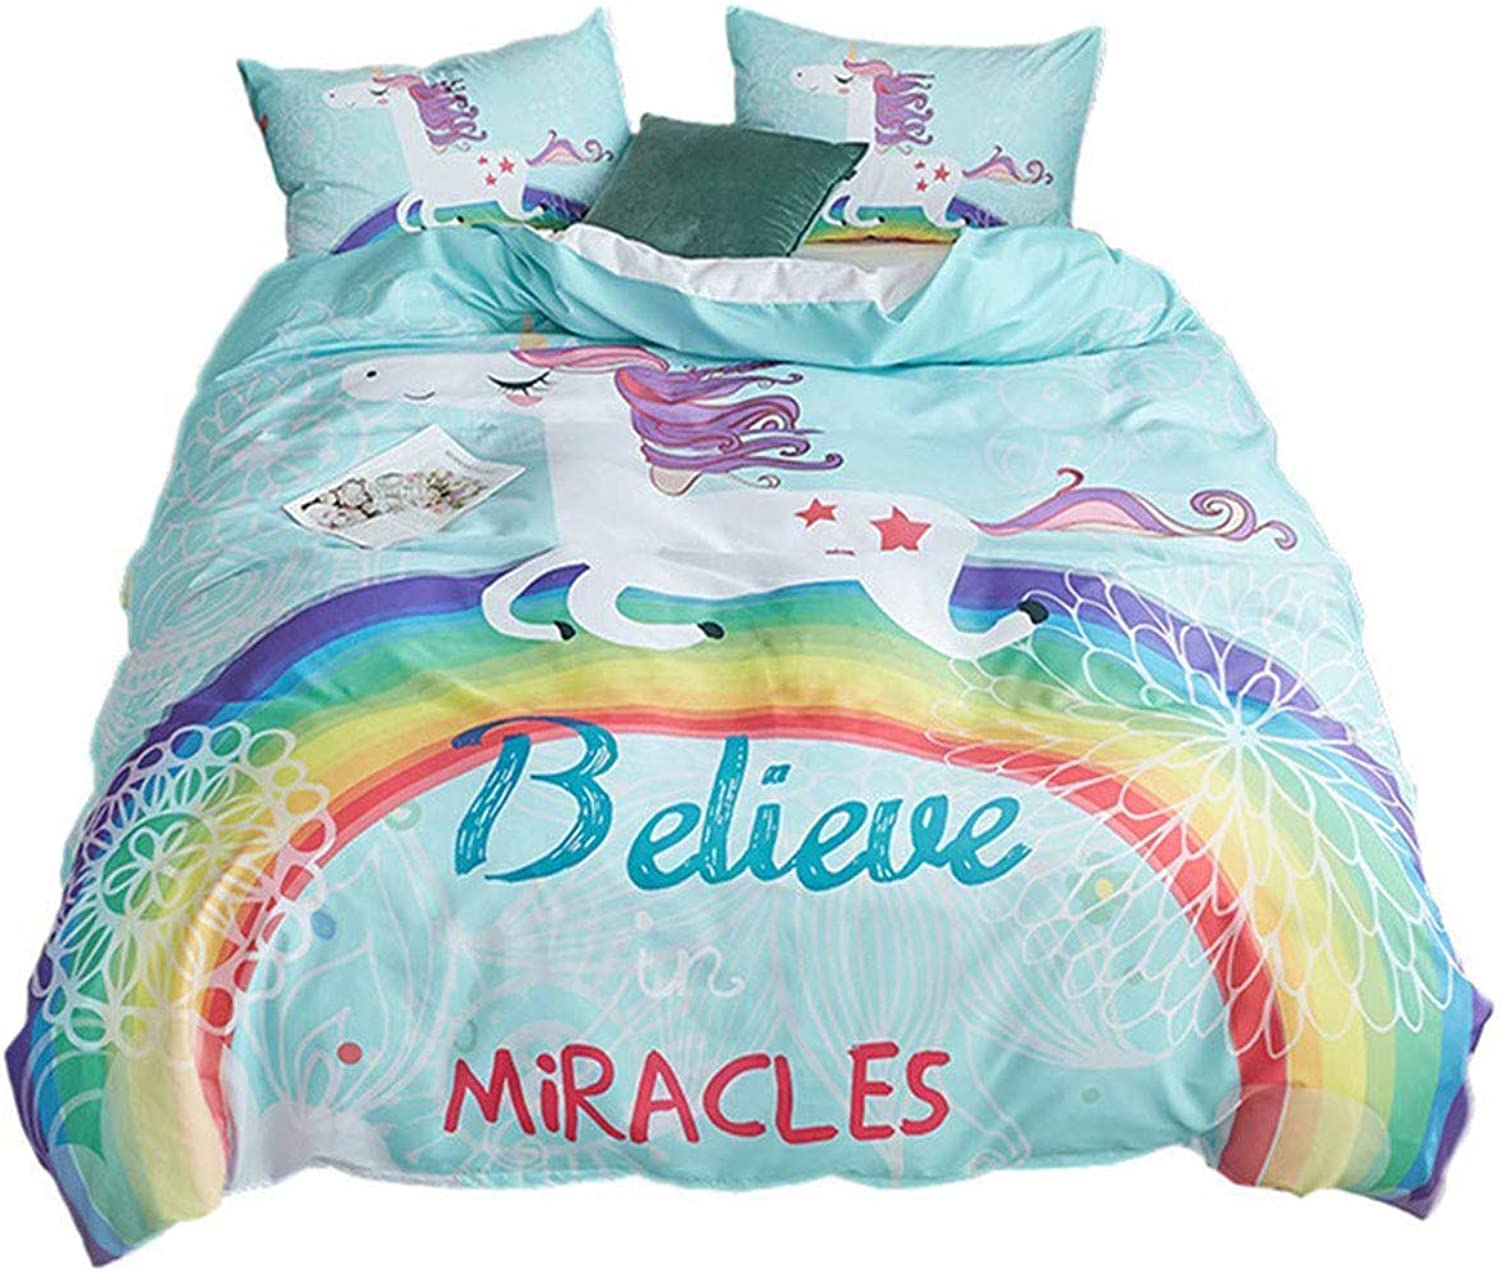 ADASMILE A & S Unicorn Bedding King for Girls Women Rainbow Duvet Cover and Pillowcase Set Wrinkle Resistant, King Size